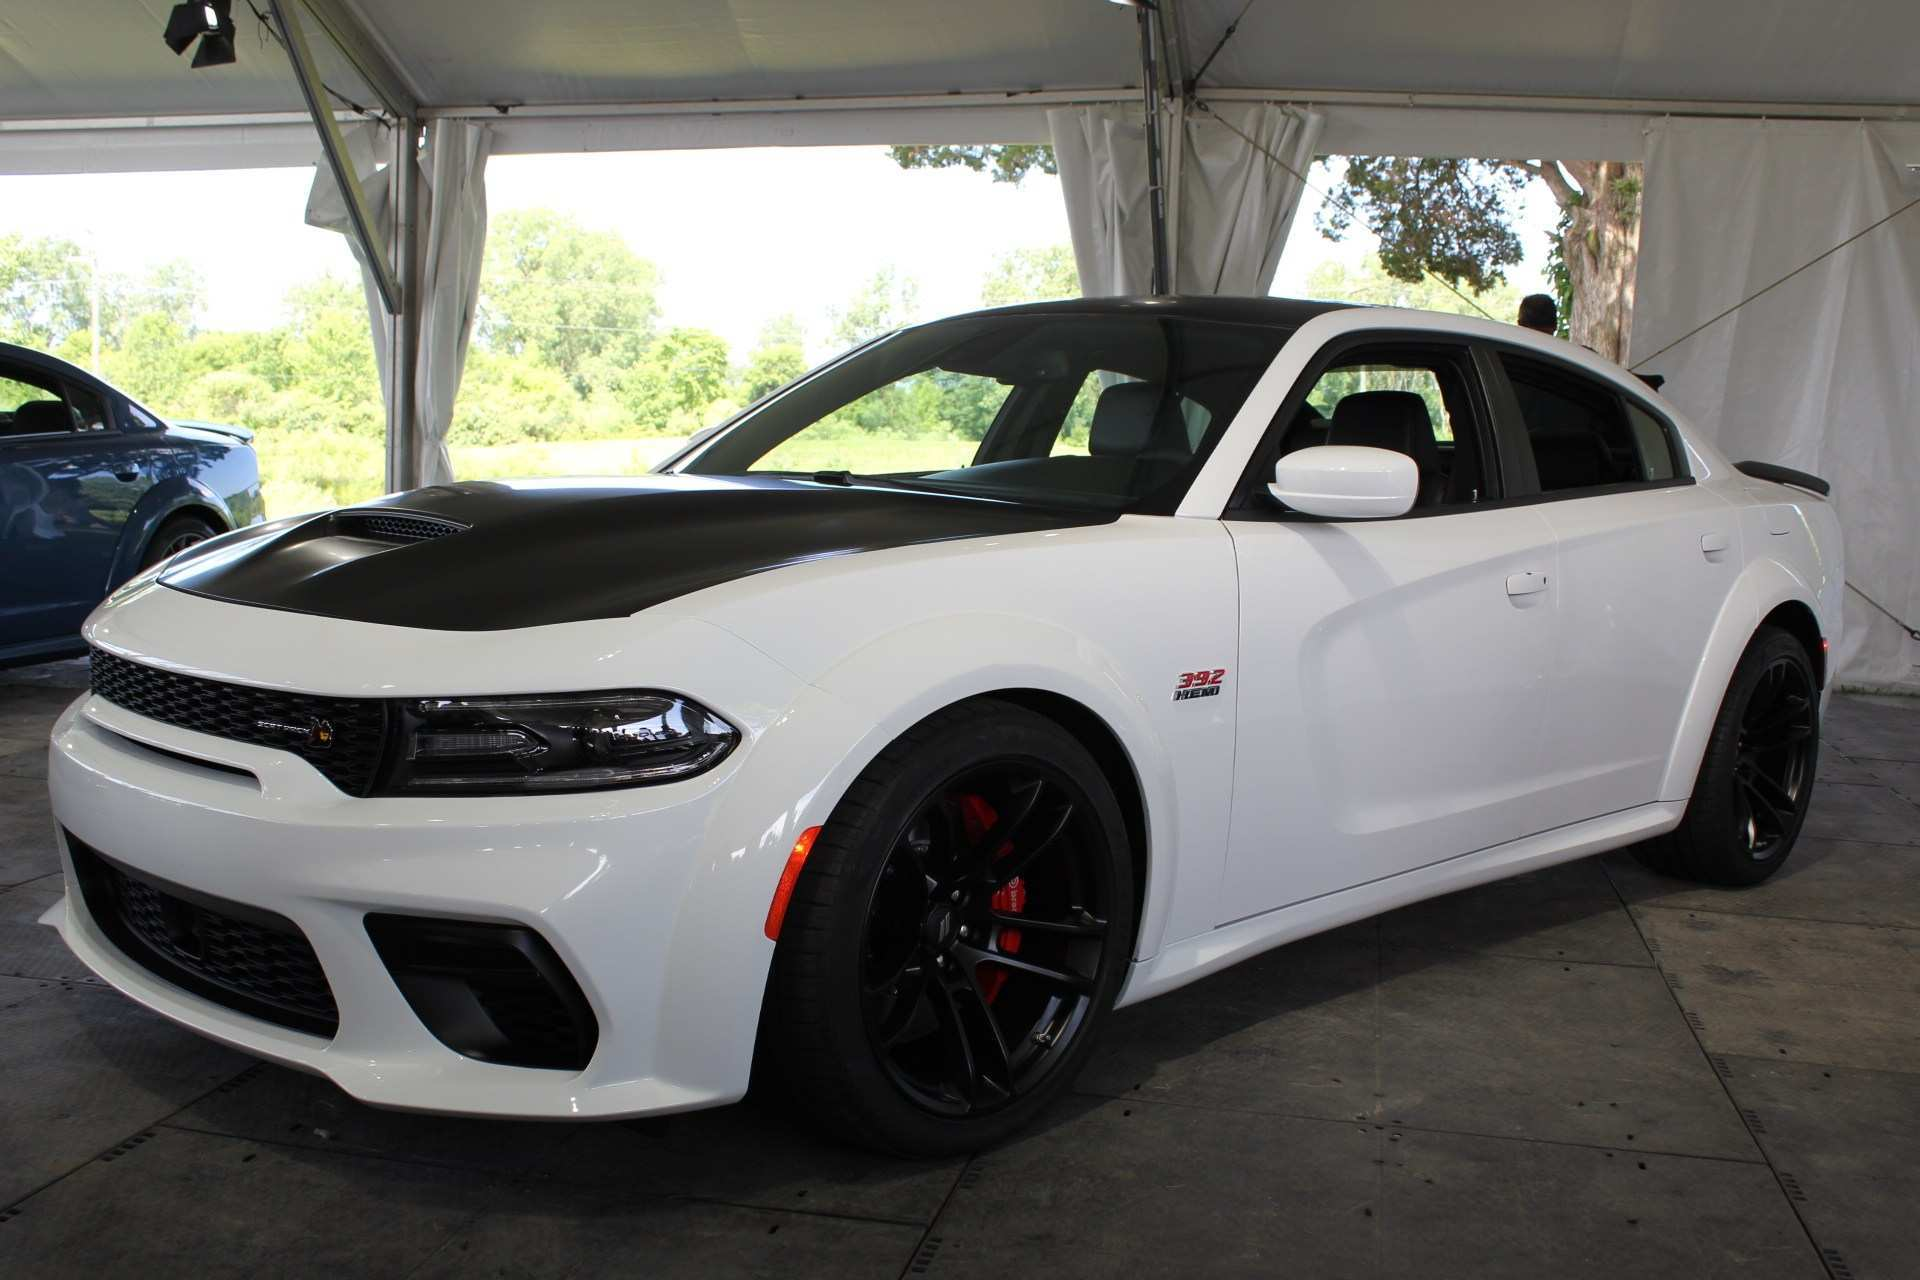 38 New 2020 Dodge Charger Scat Pack Widebody Engine